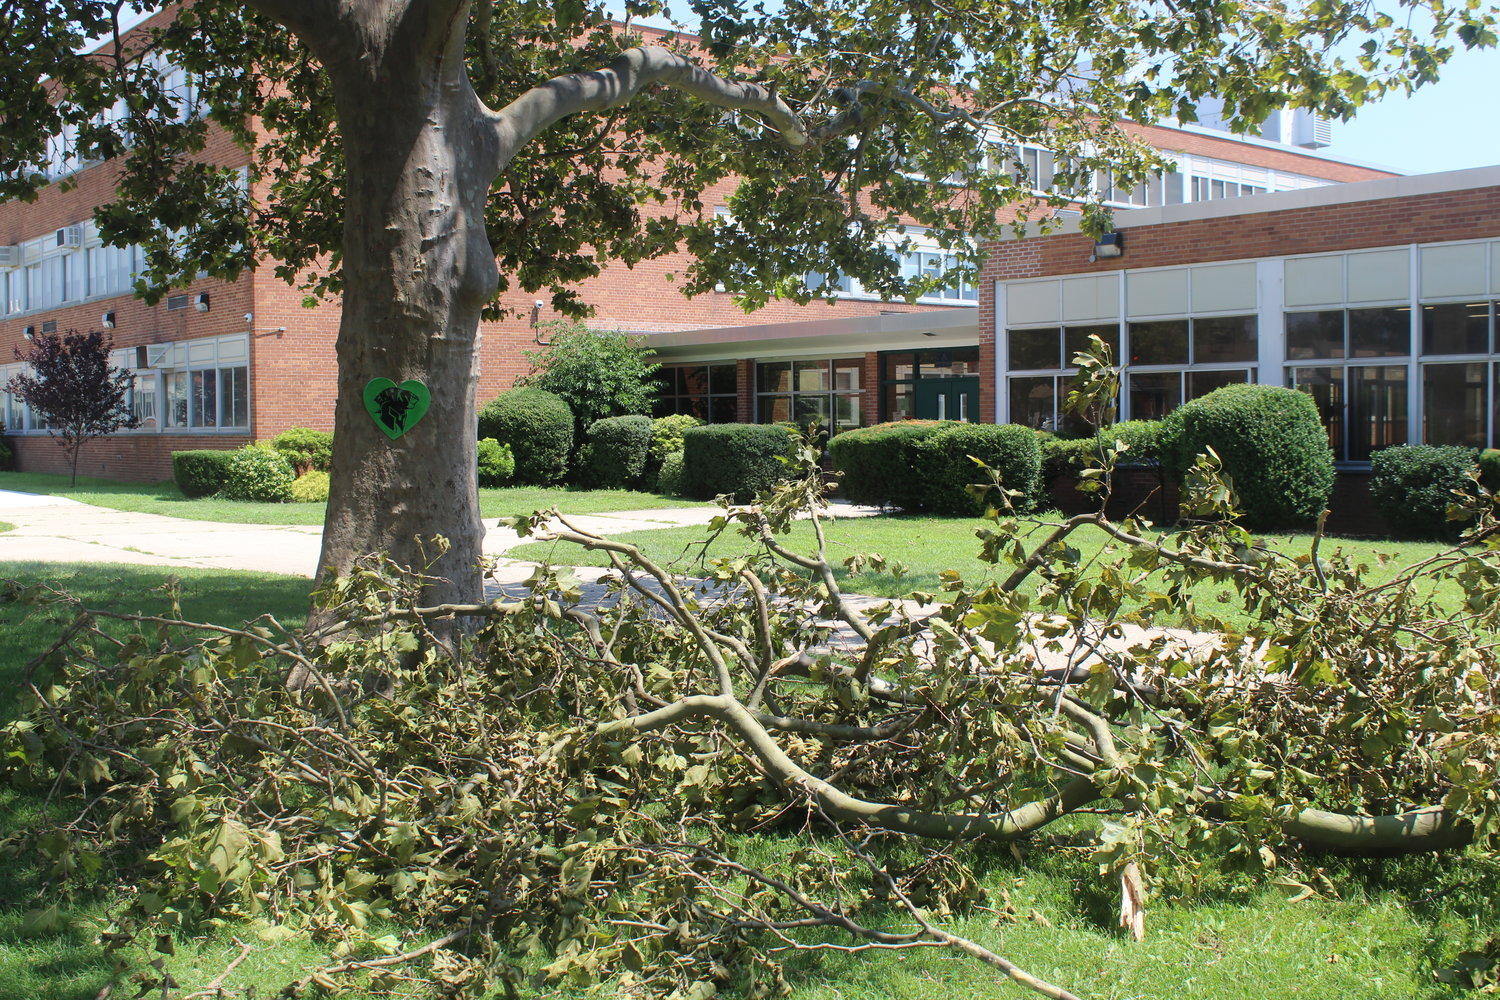 Limbs were down at Elmont Memorial High School.